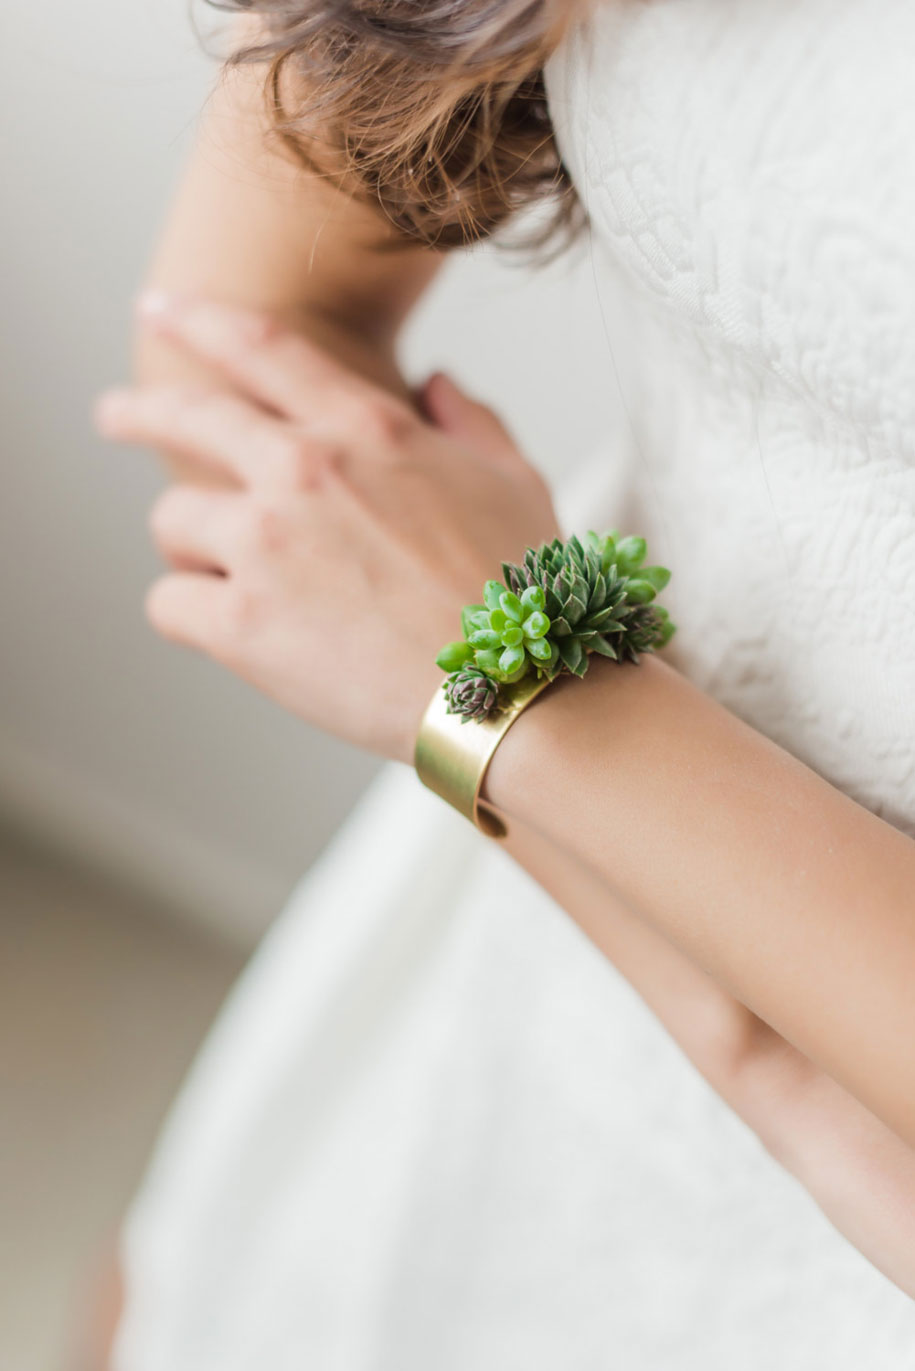 living-plant-succulent-jewelry-susan-mcleary-passionflower-7